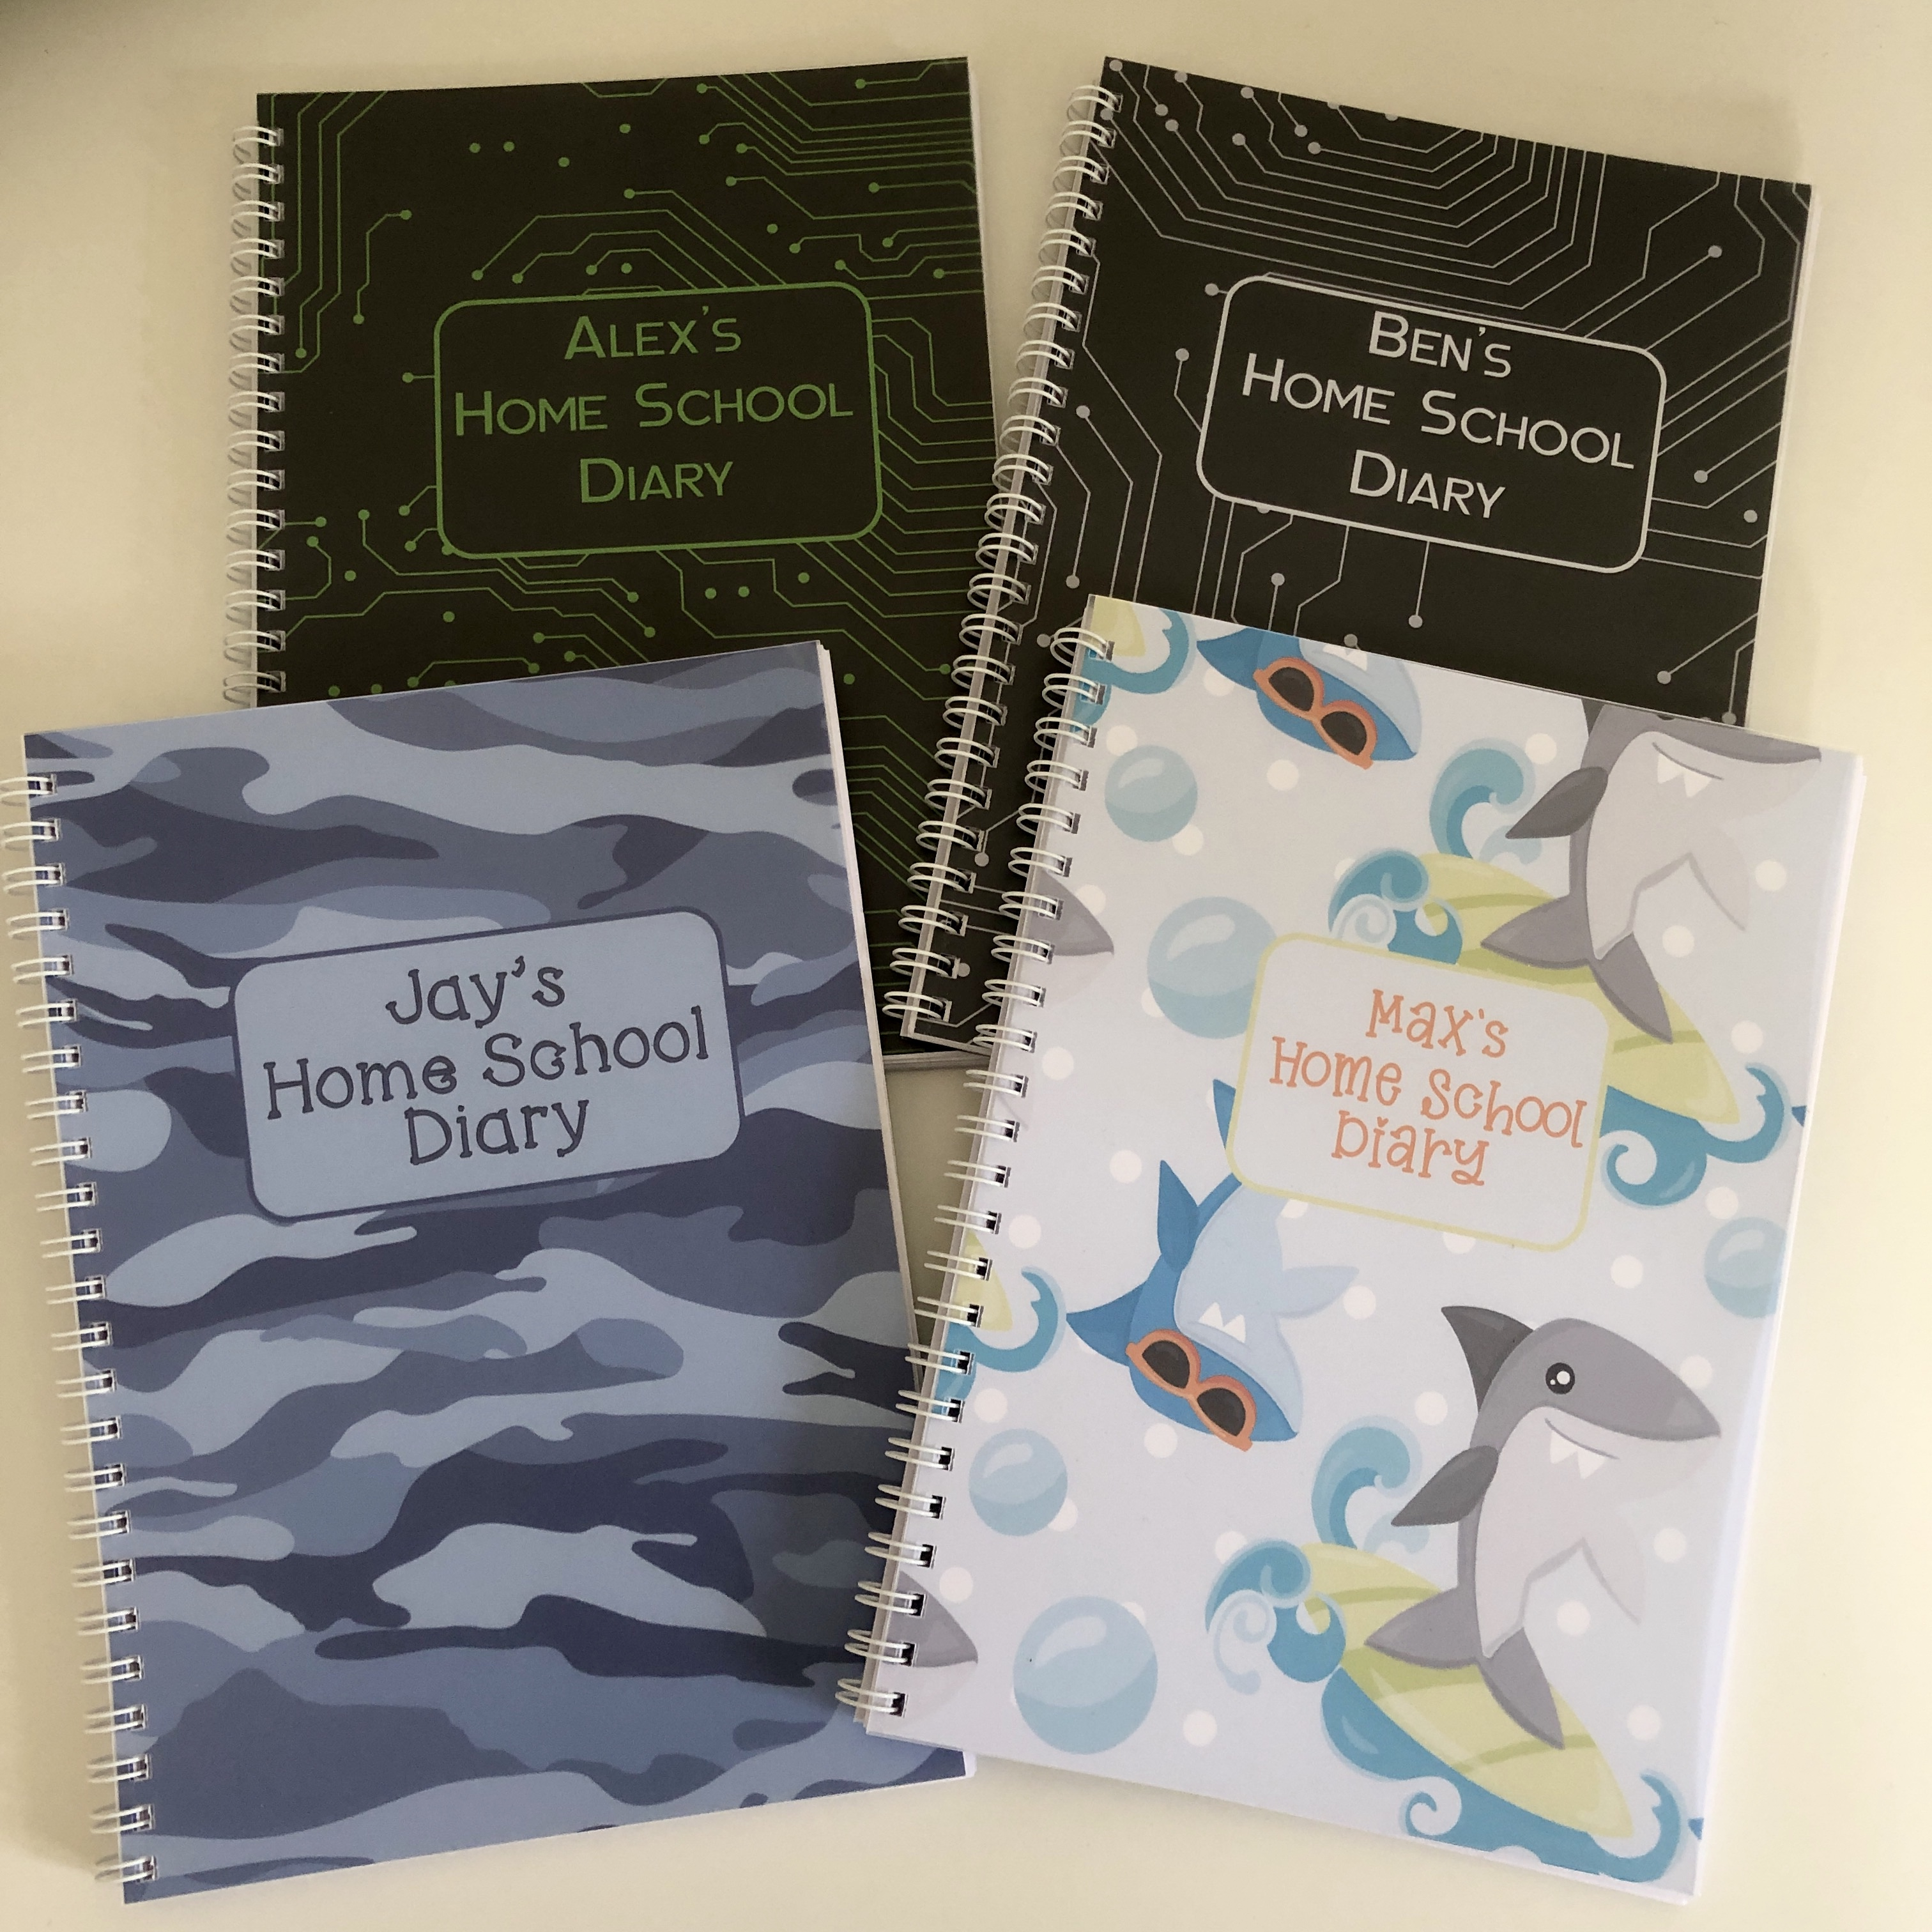 Home Schooling Diary's